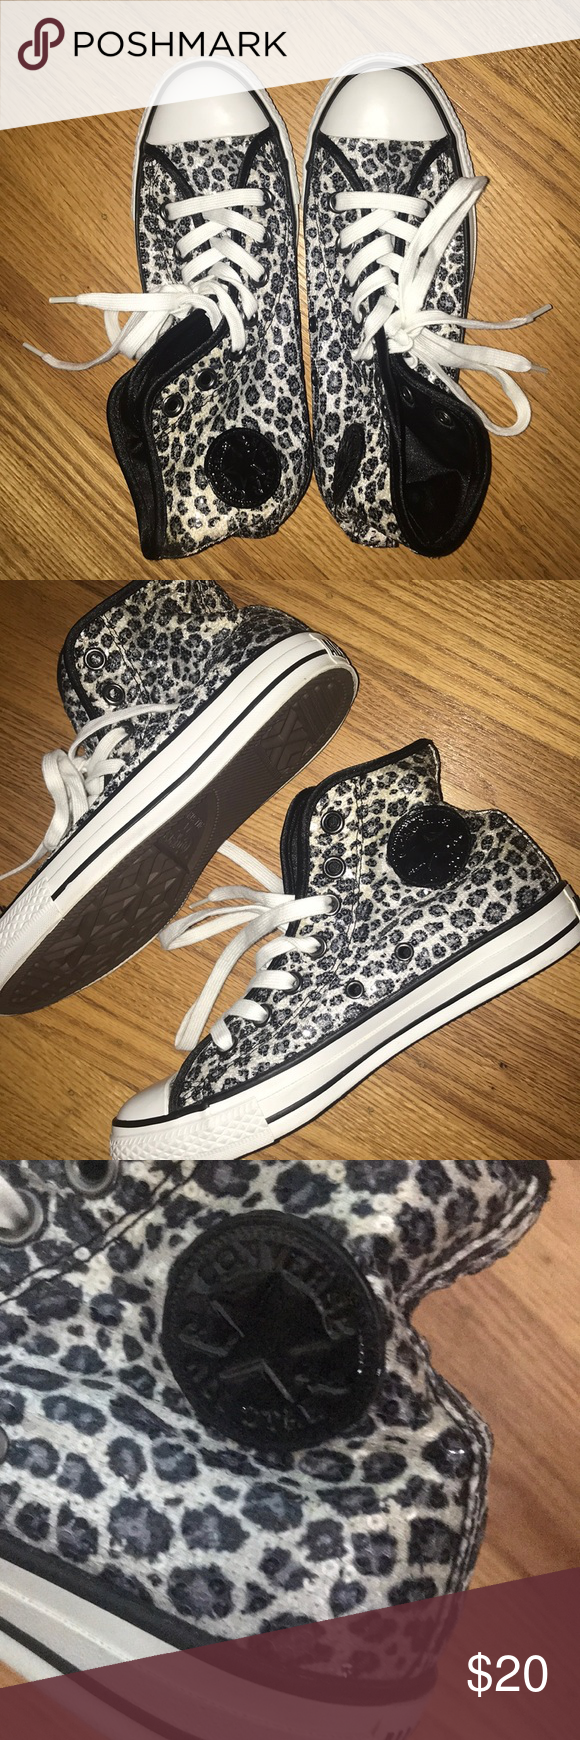 9bdeacf317c34f Converse Leopard Print   Sequin High Tops Only worn once